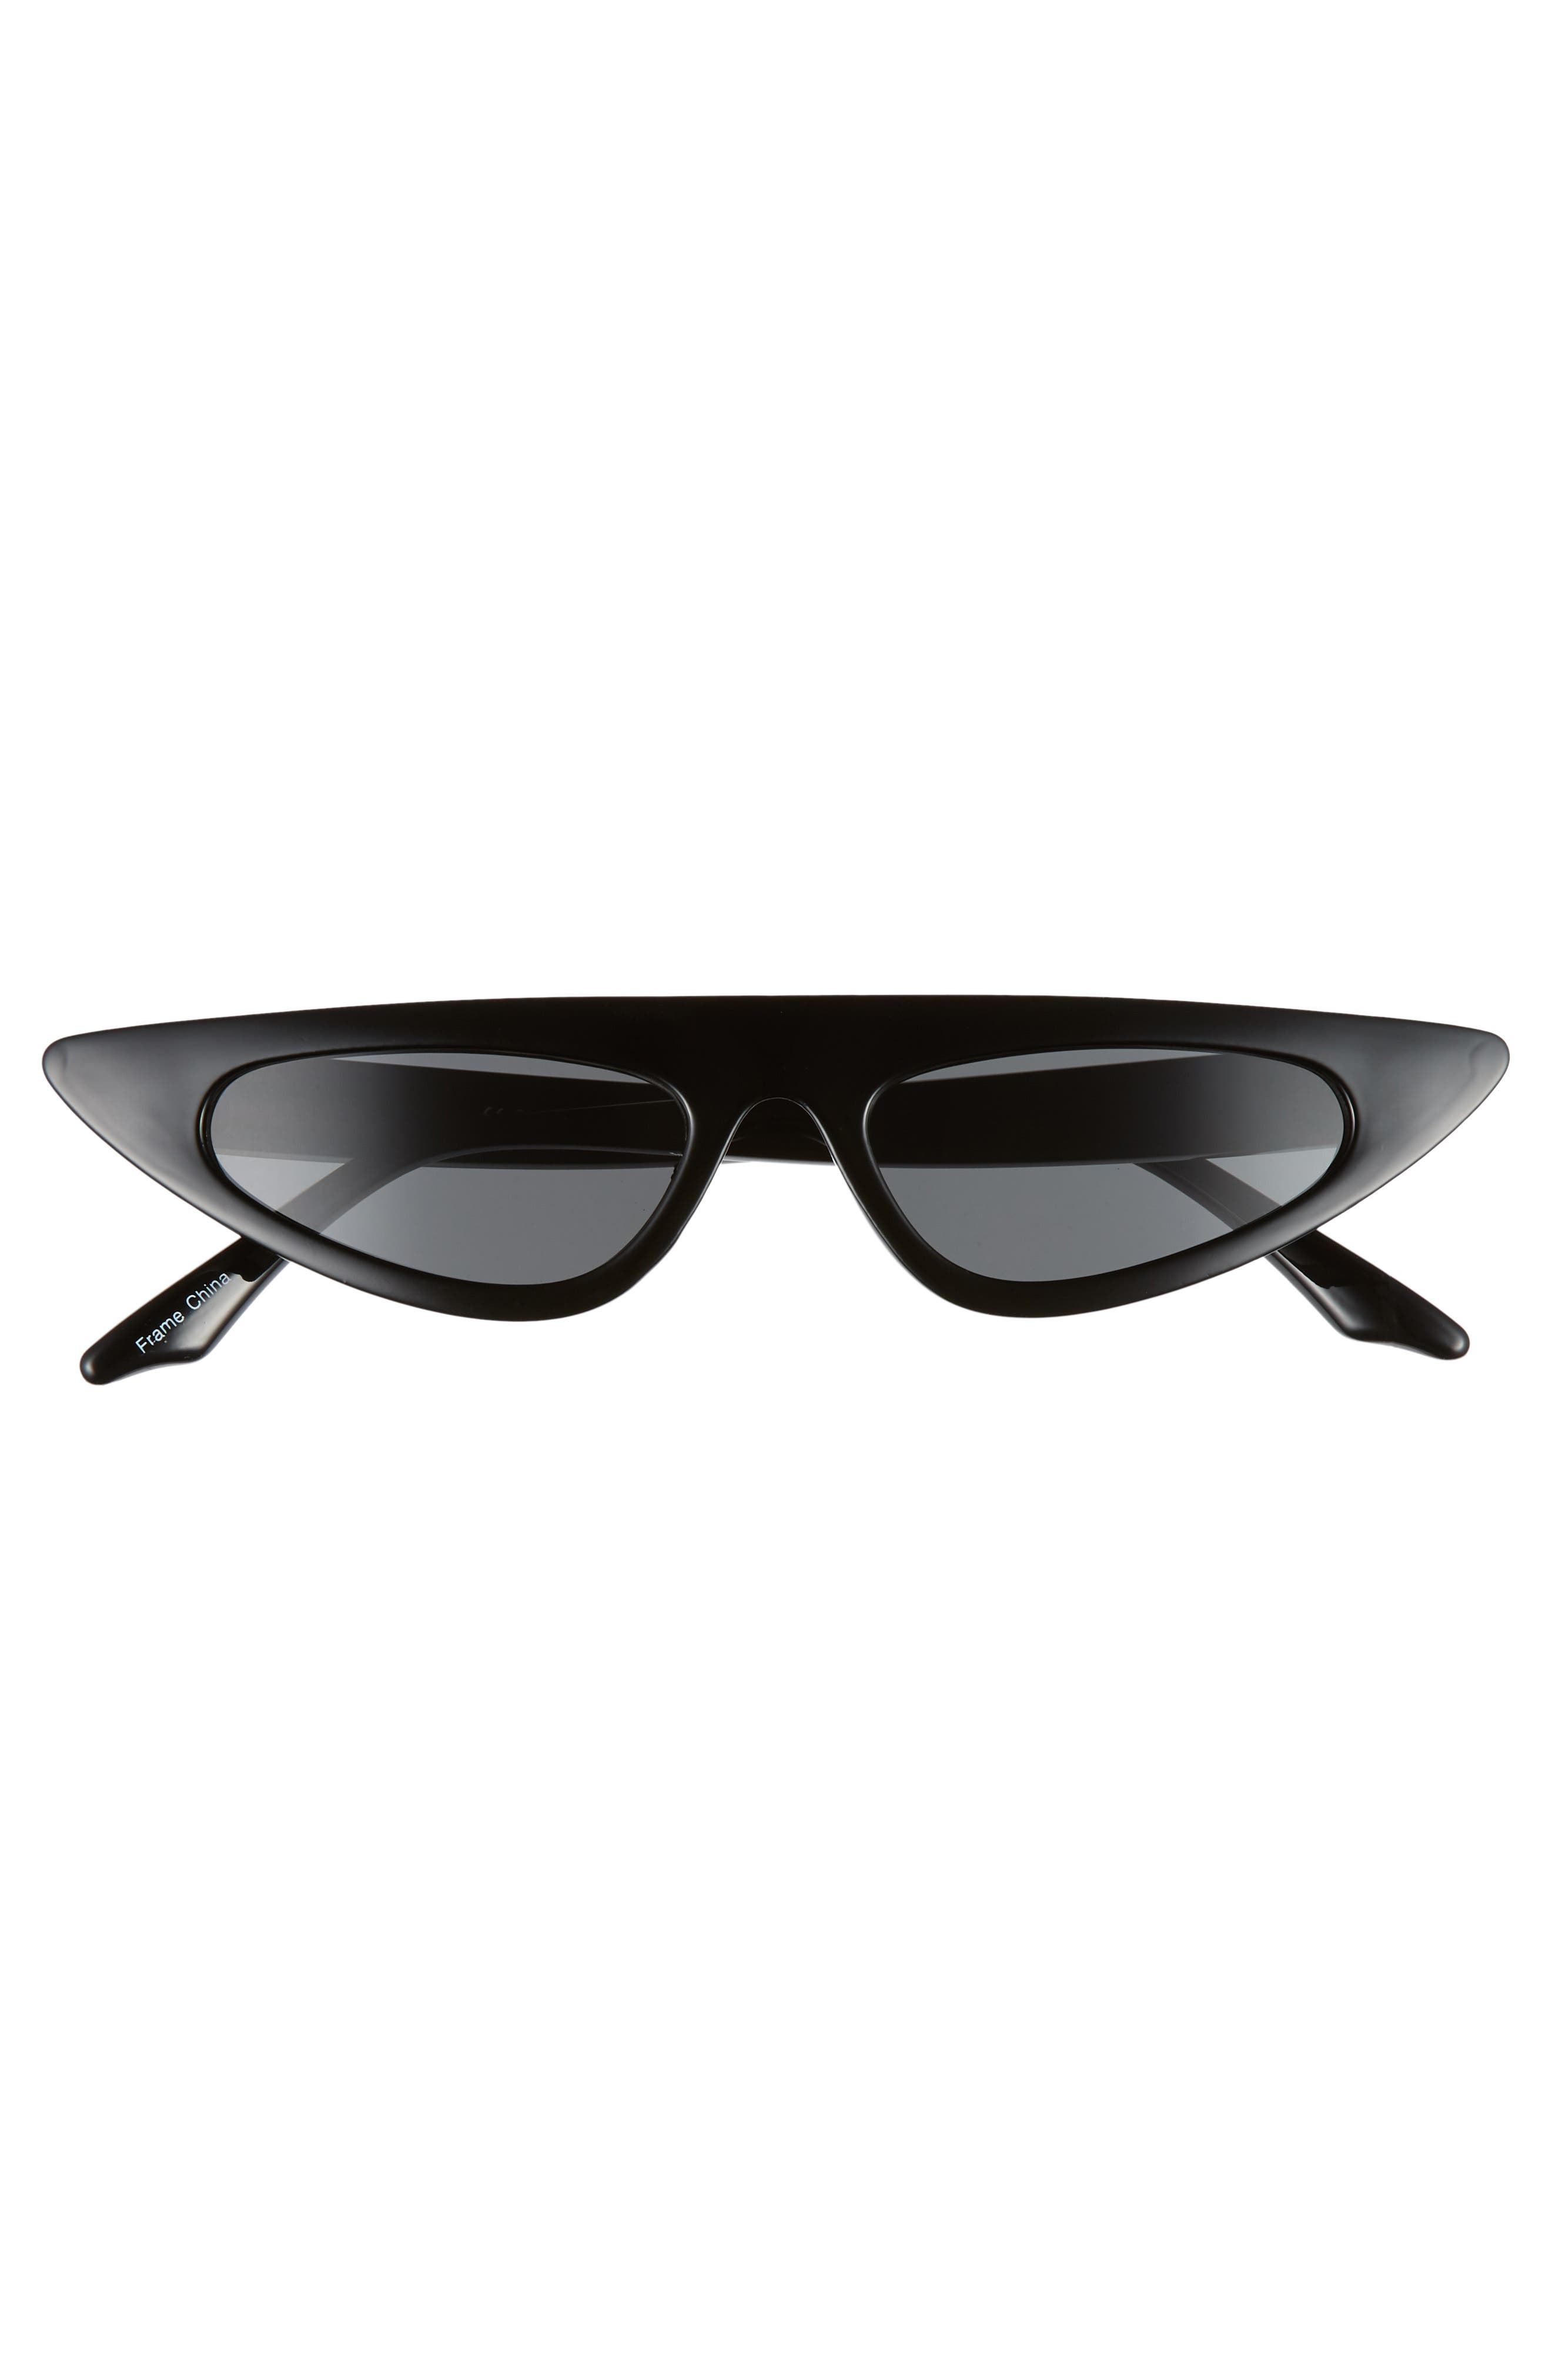 50mm Flat Top Cat Eye Sunglasses,                             Alternate thumbnail 3, color,                             BLACK